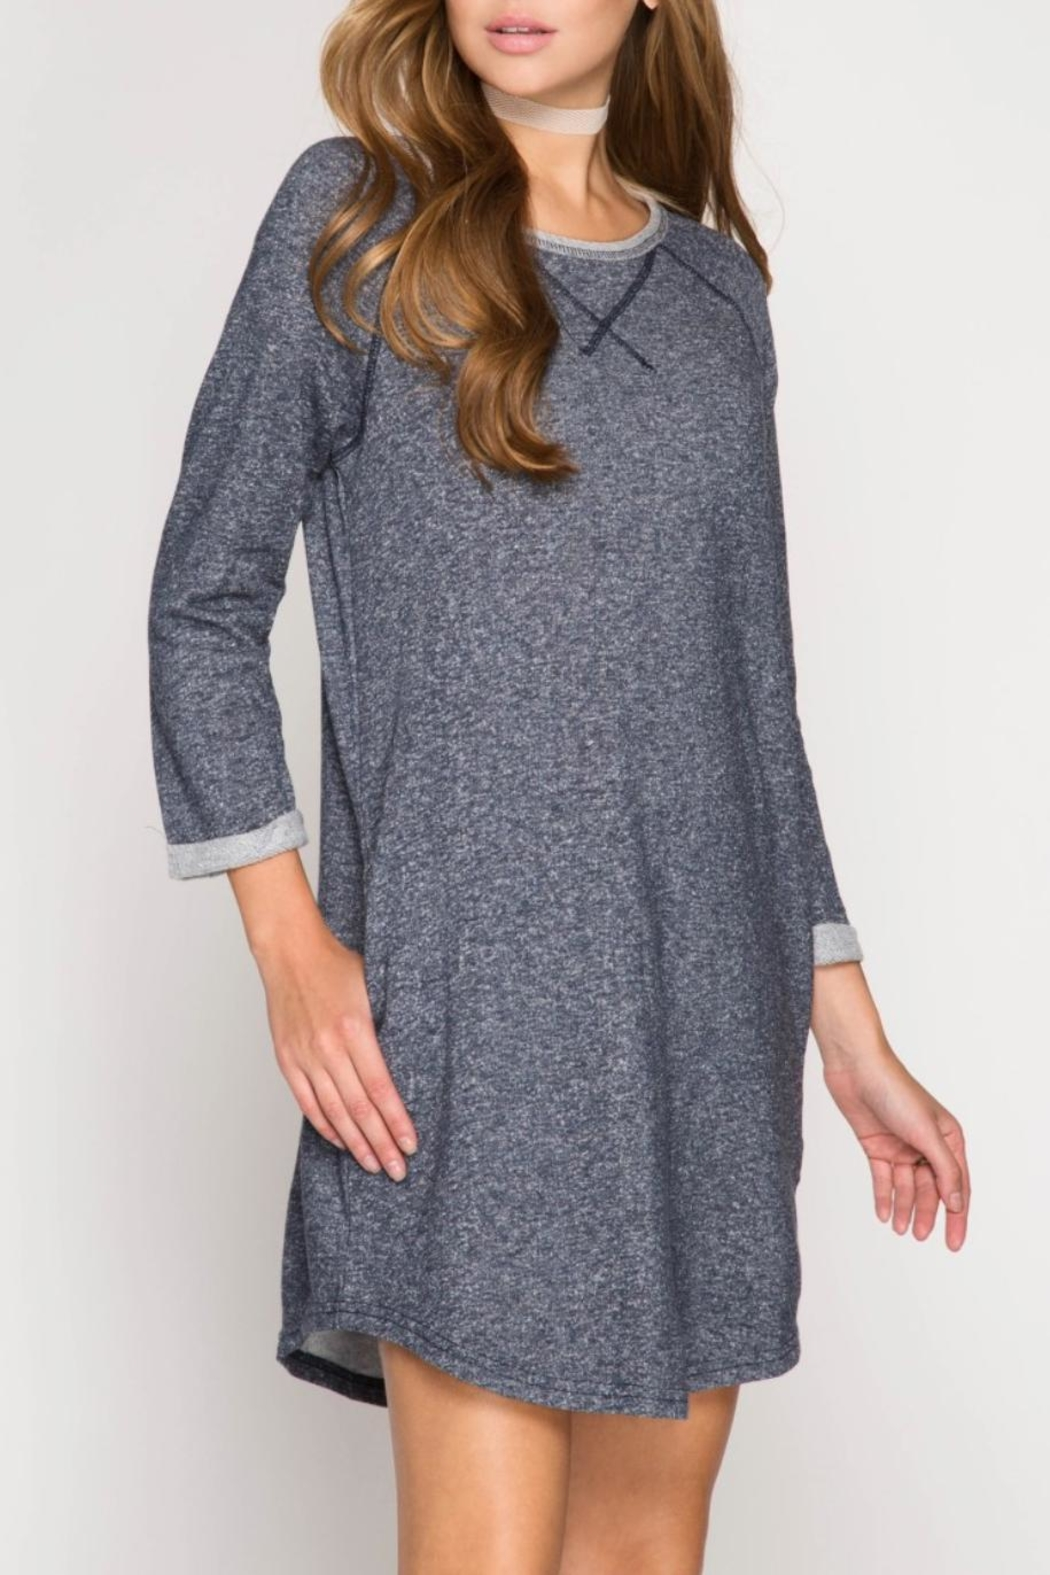 She + Sky Casual Pocket Dress - Front Cropped Image